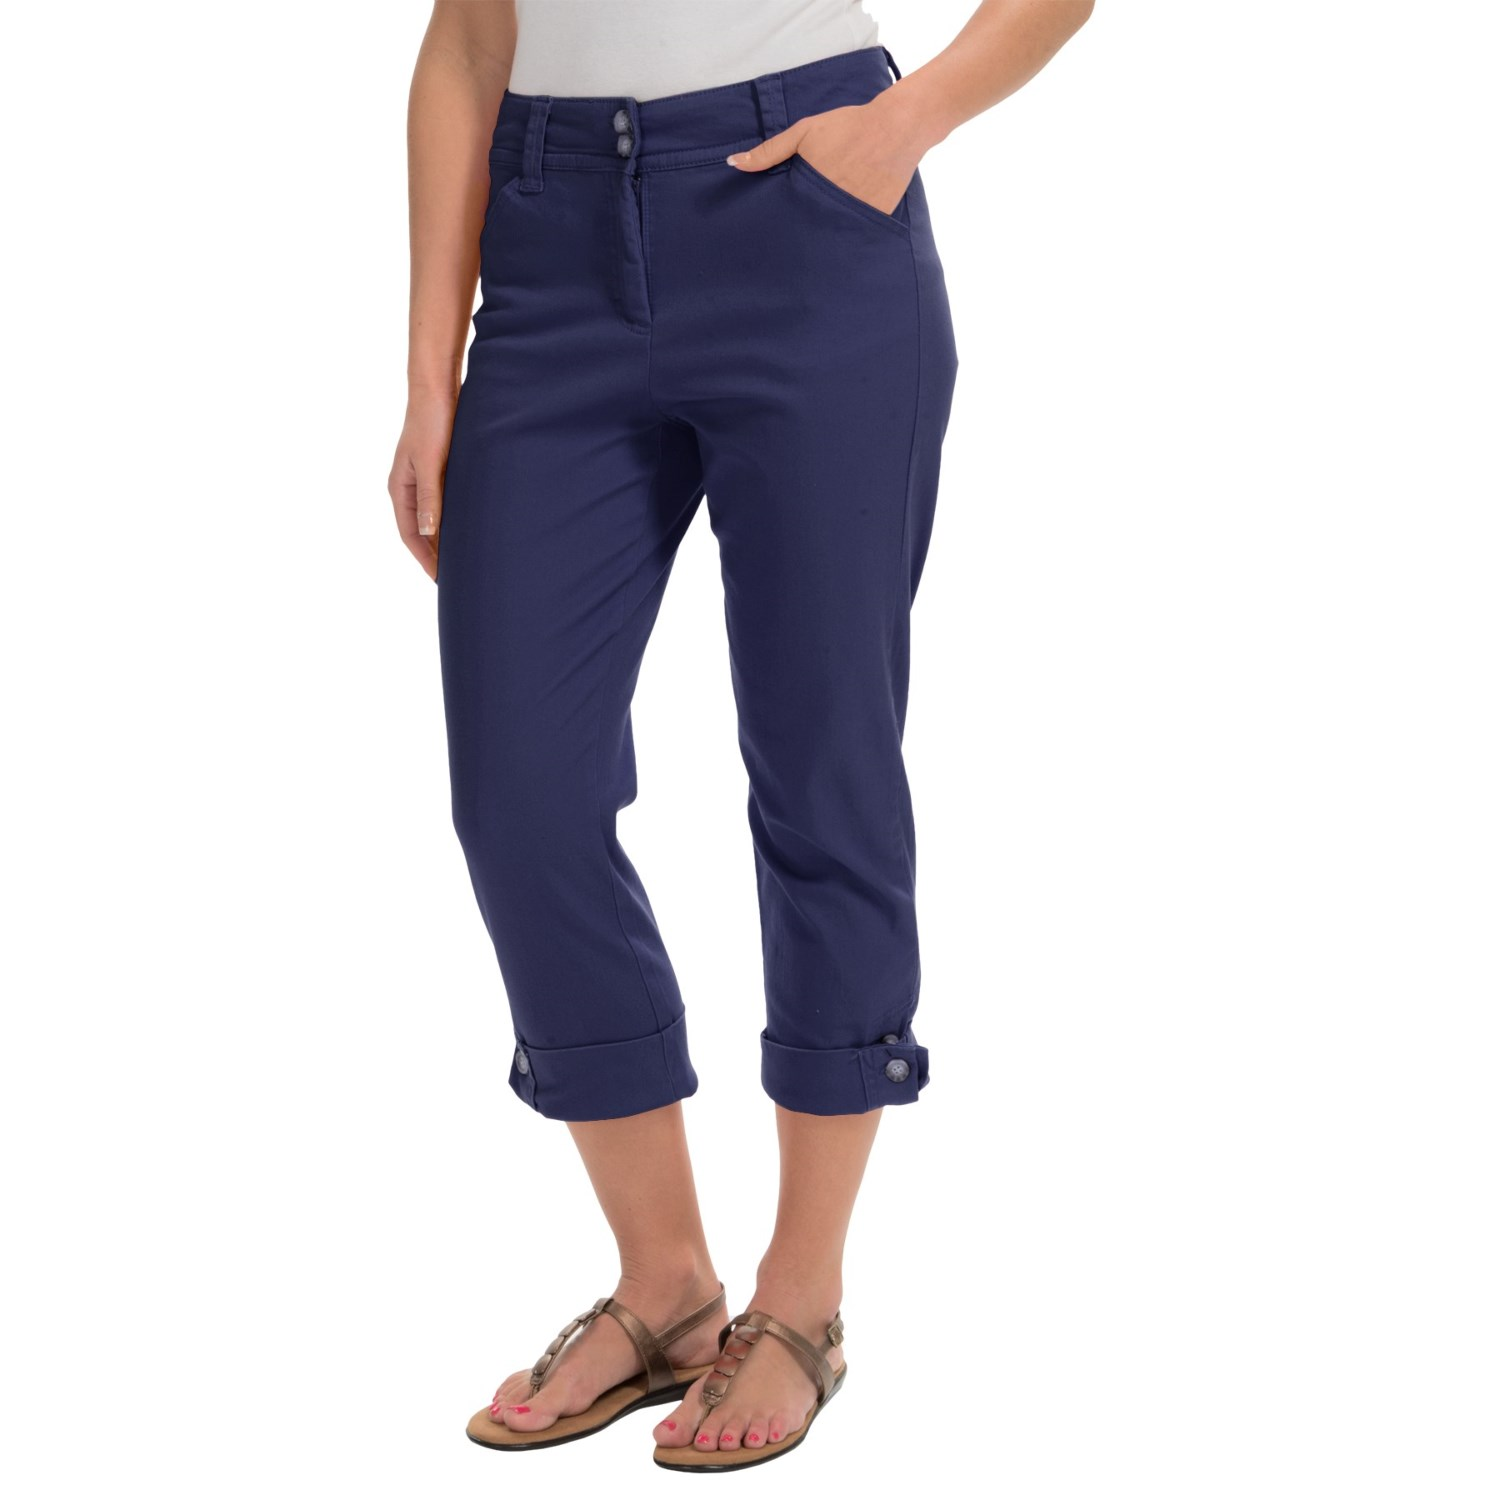 Shop ankle cuffed pants at Neiman Marcus, where you will find free shipping on the latest in fashion from top designers.